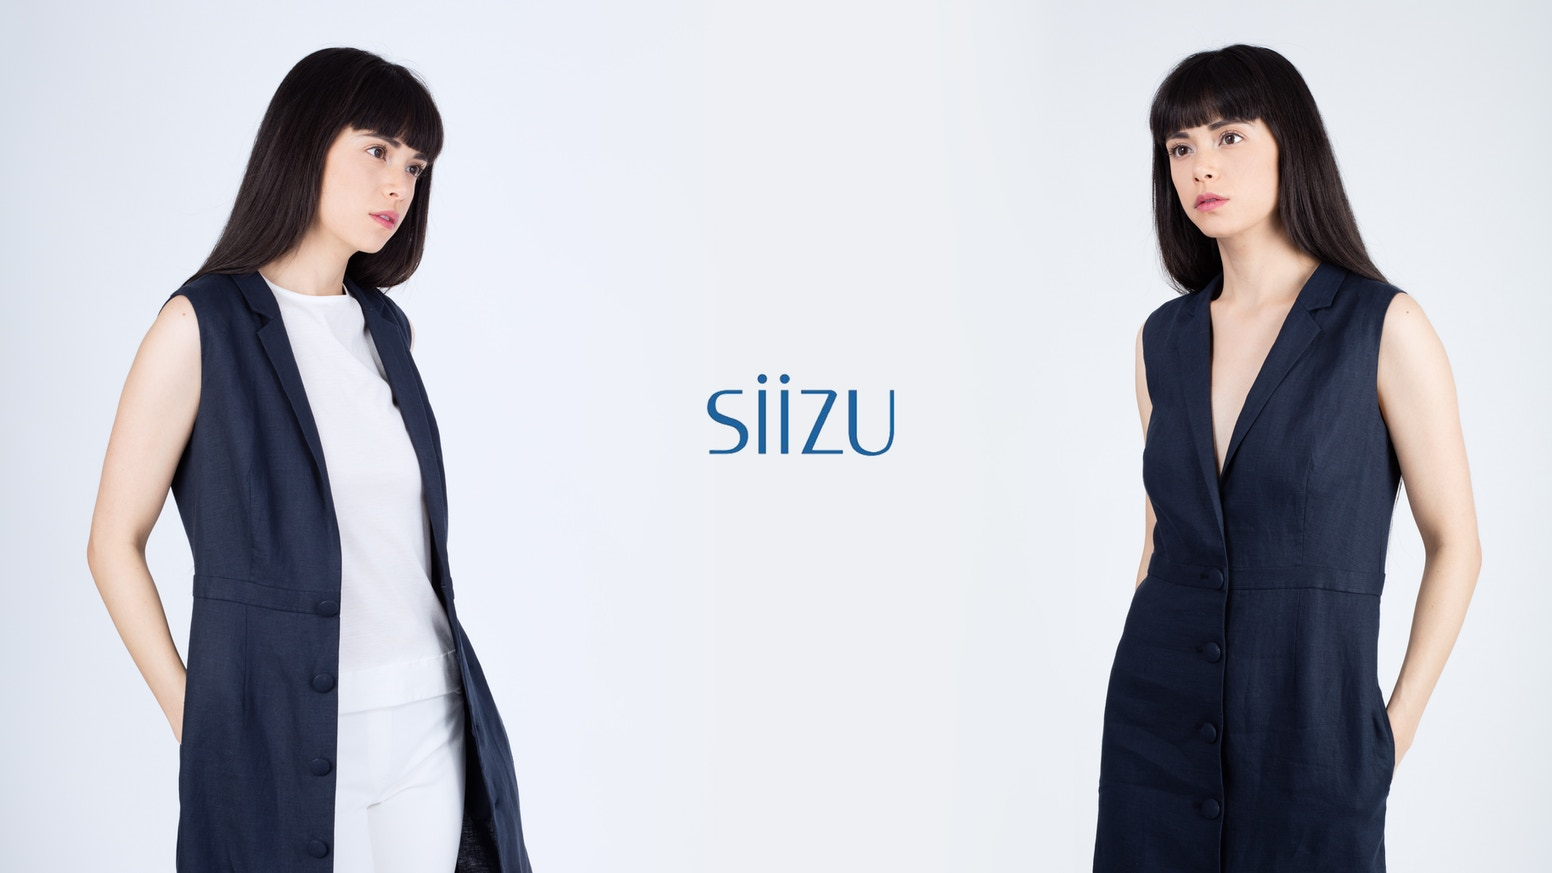 SiiZU's is here to deliver stylish fashion that is comfortable to wear, ethically produced, and refreshingly affordable.